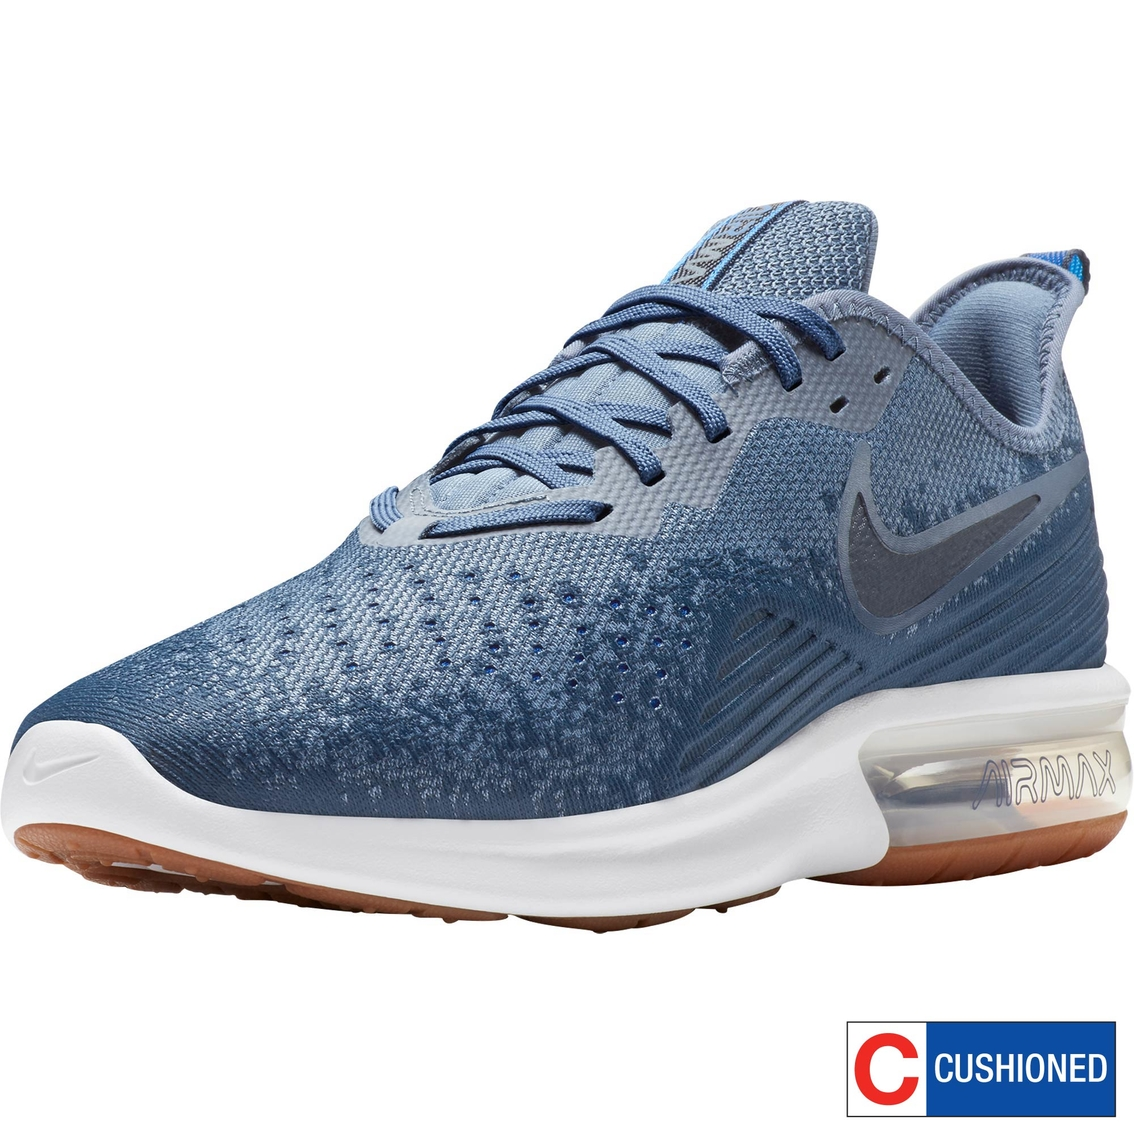 2aff3149d8 Nike Men's Air Max Sequent 4 Running Shoes | Running | Father's Day ...